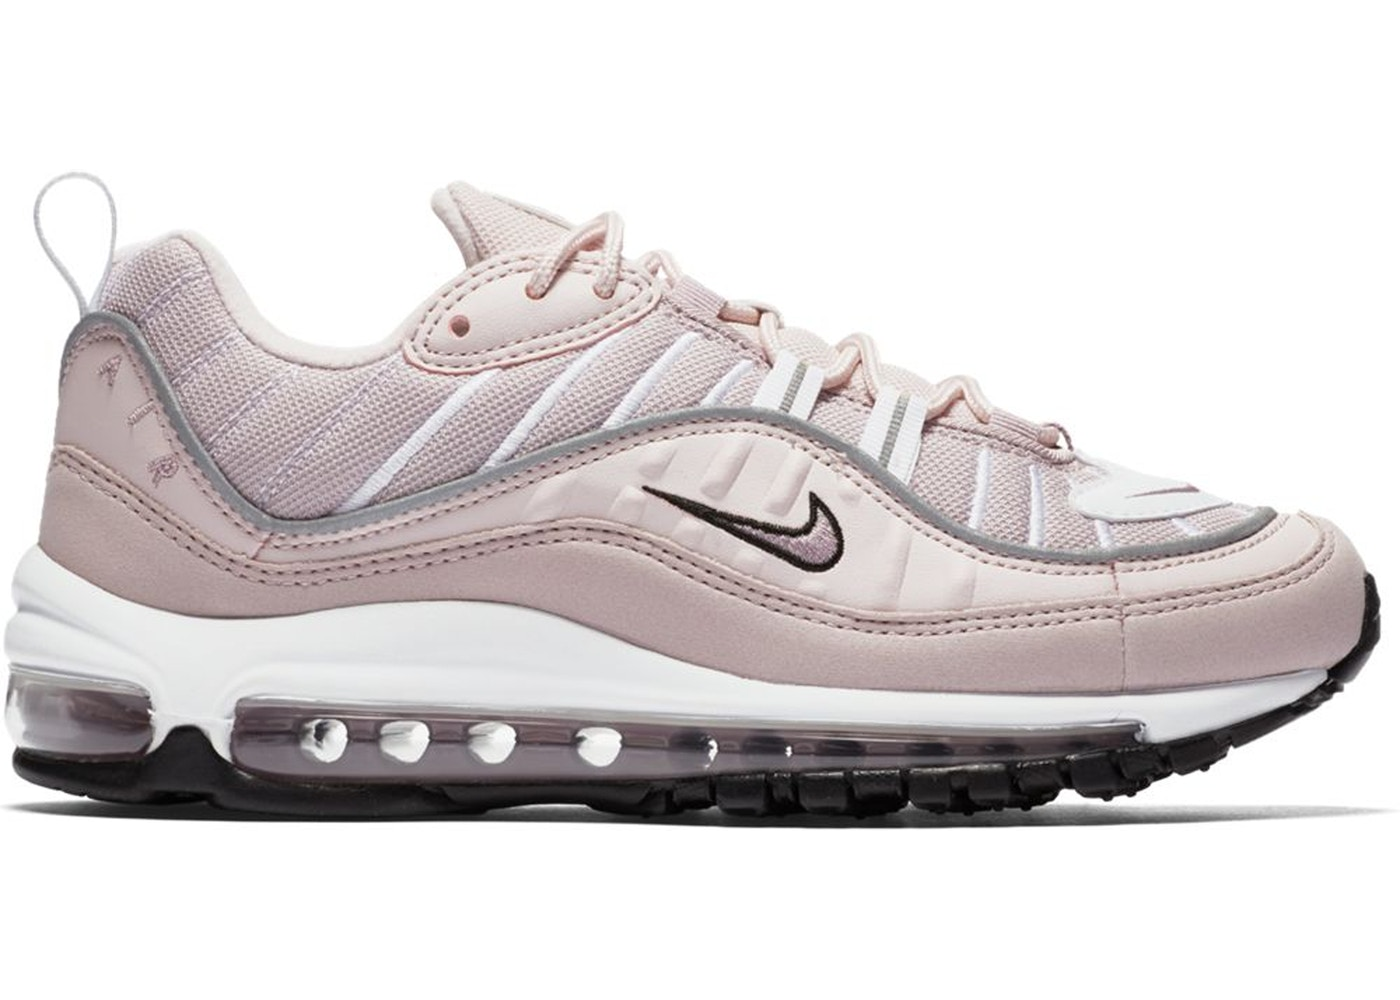 f98d71bfe5 Air Max 98 Barely Rose (W) - AH6799-600